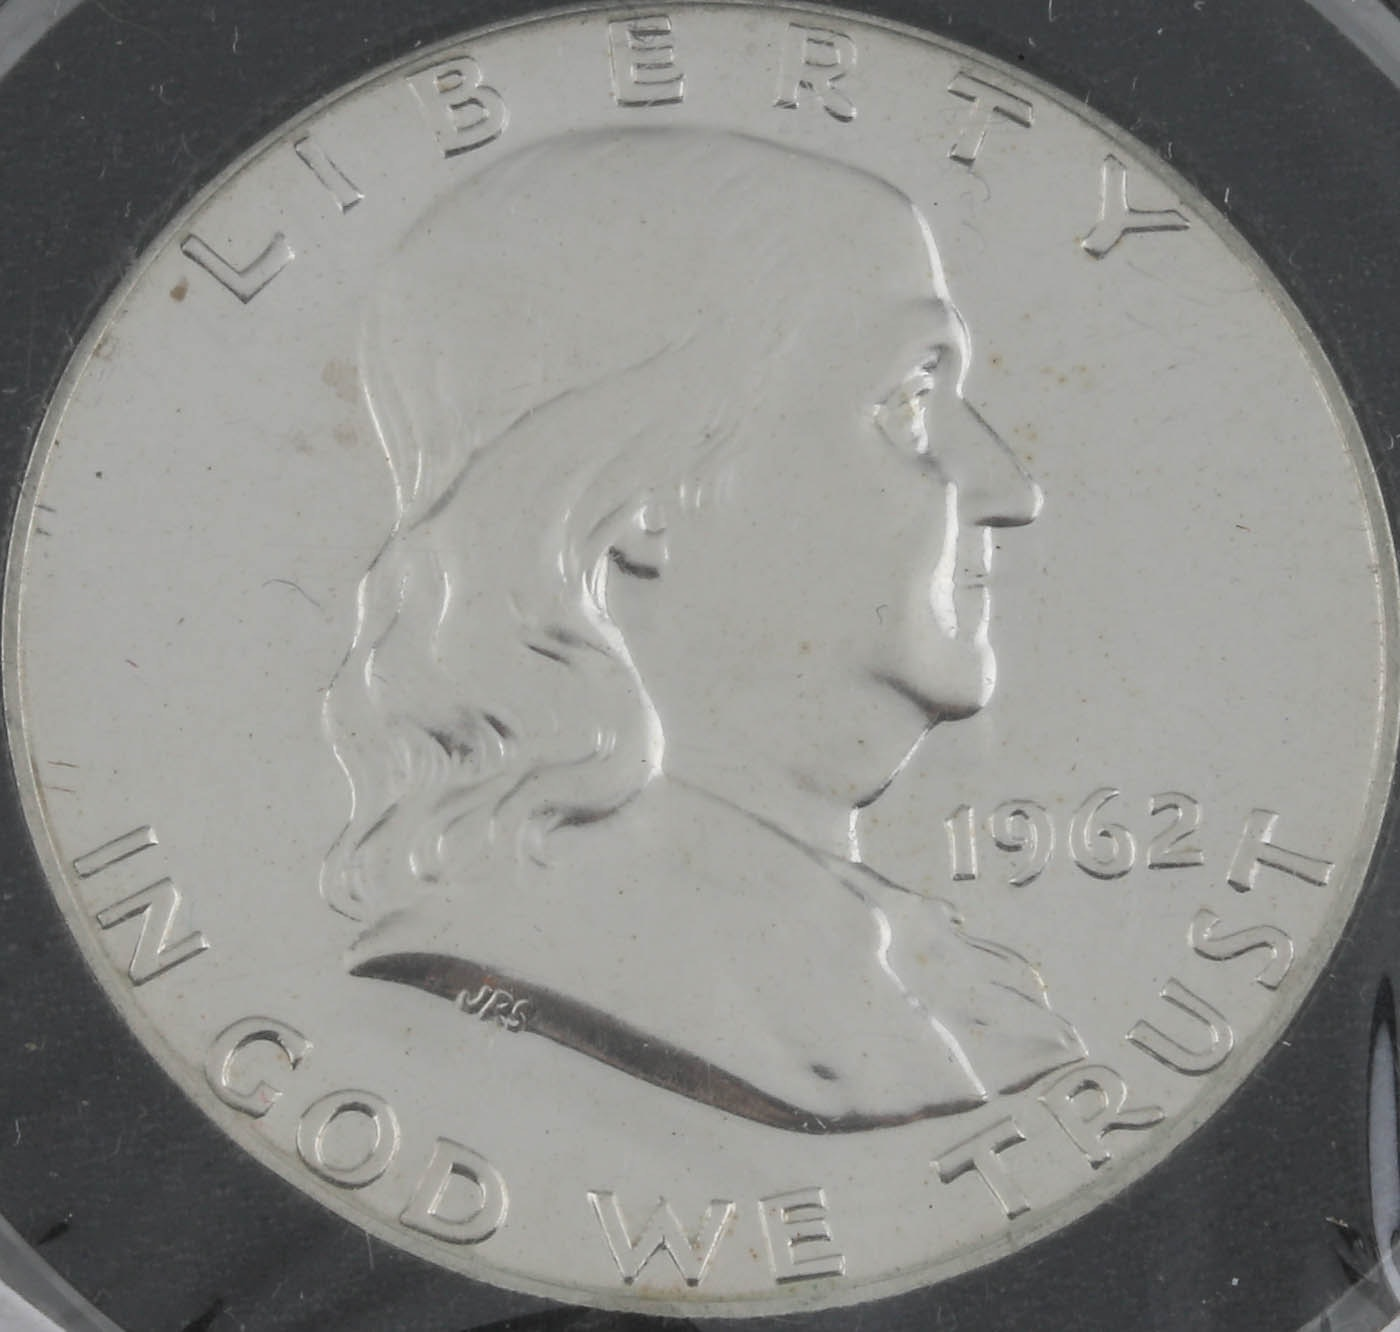 1962 Franklin Silver Half Dollar Proof Coin